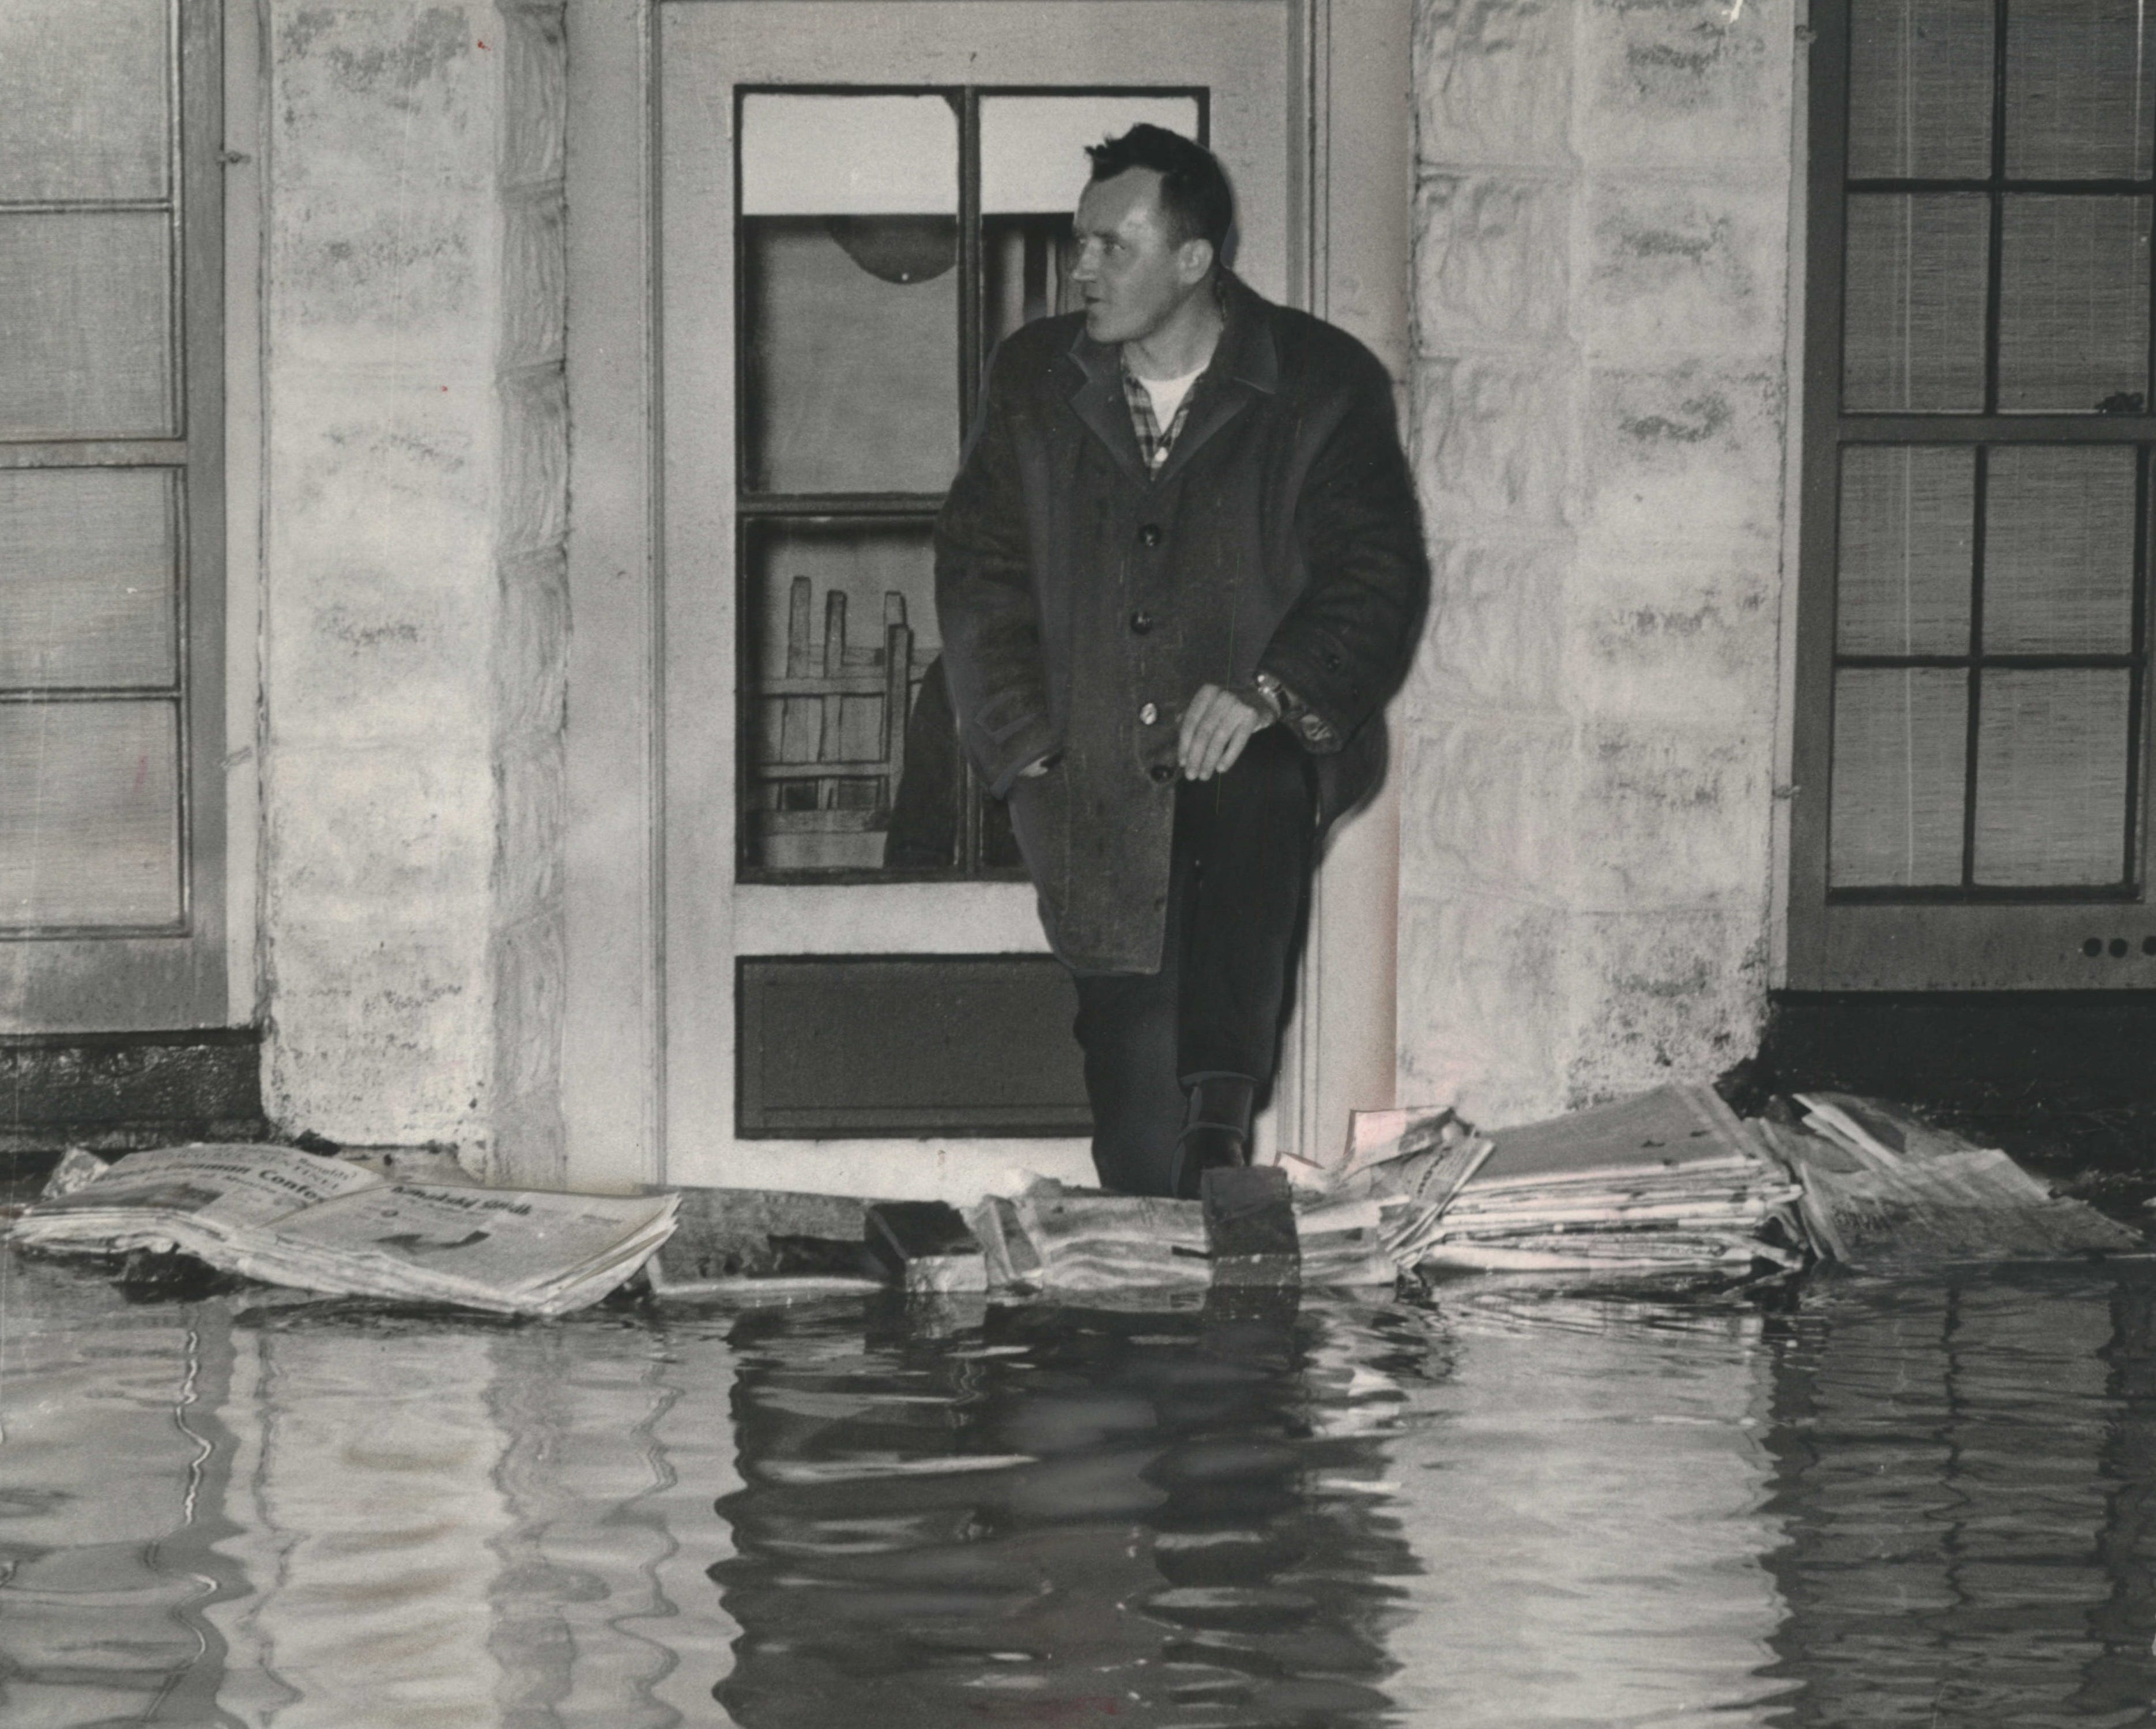 Stacks of newspapers, weighted by bricks, form a makeshift dam at the door of basement apartment in the 500 block of North 41st Street on March 29, 1960. This photo was published in the March 30, 1960, Milwaukee Journal.